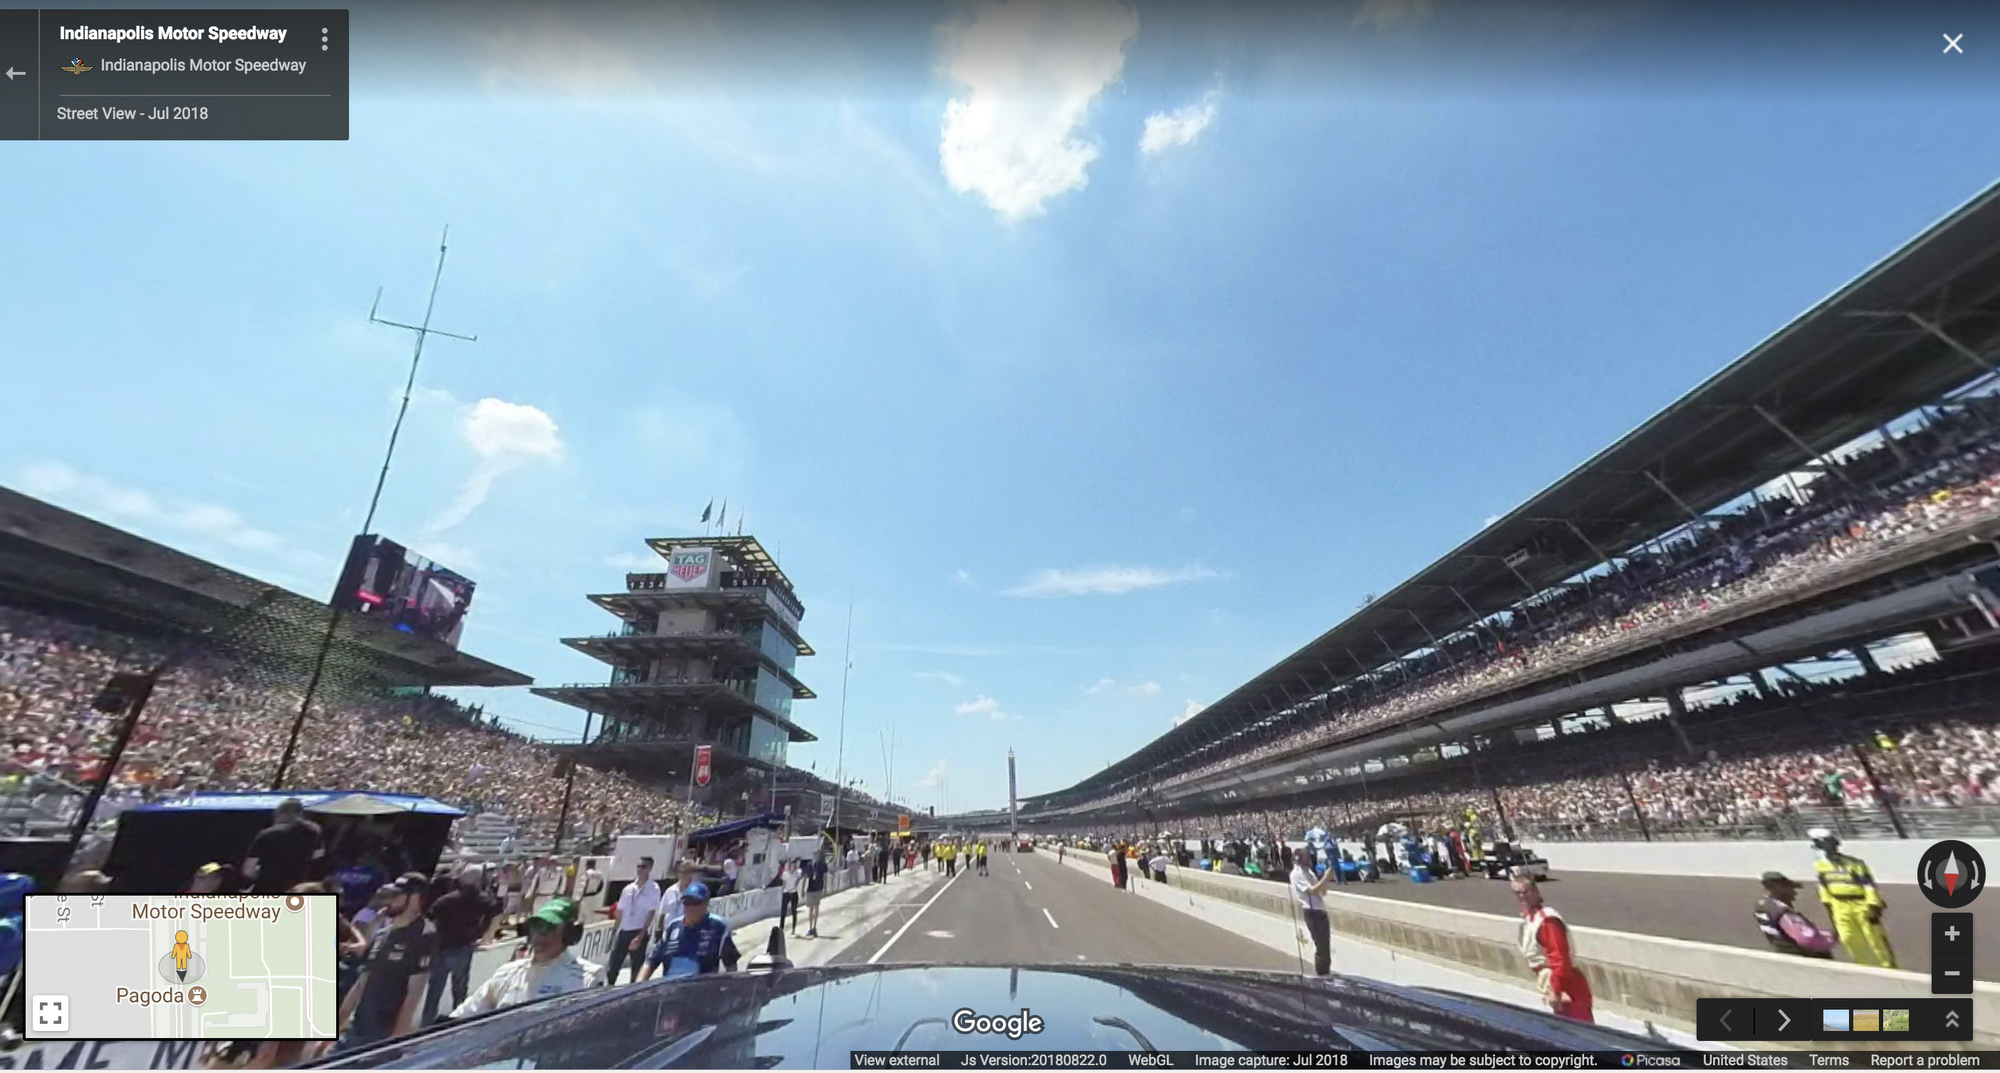 Take a spin around the Indianapolis Motor Speedway in Google Maps